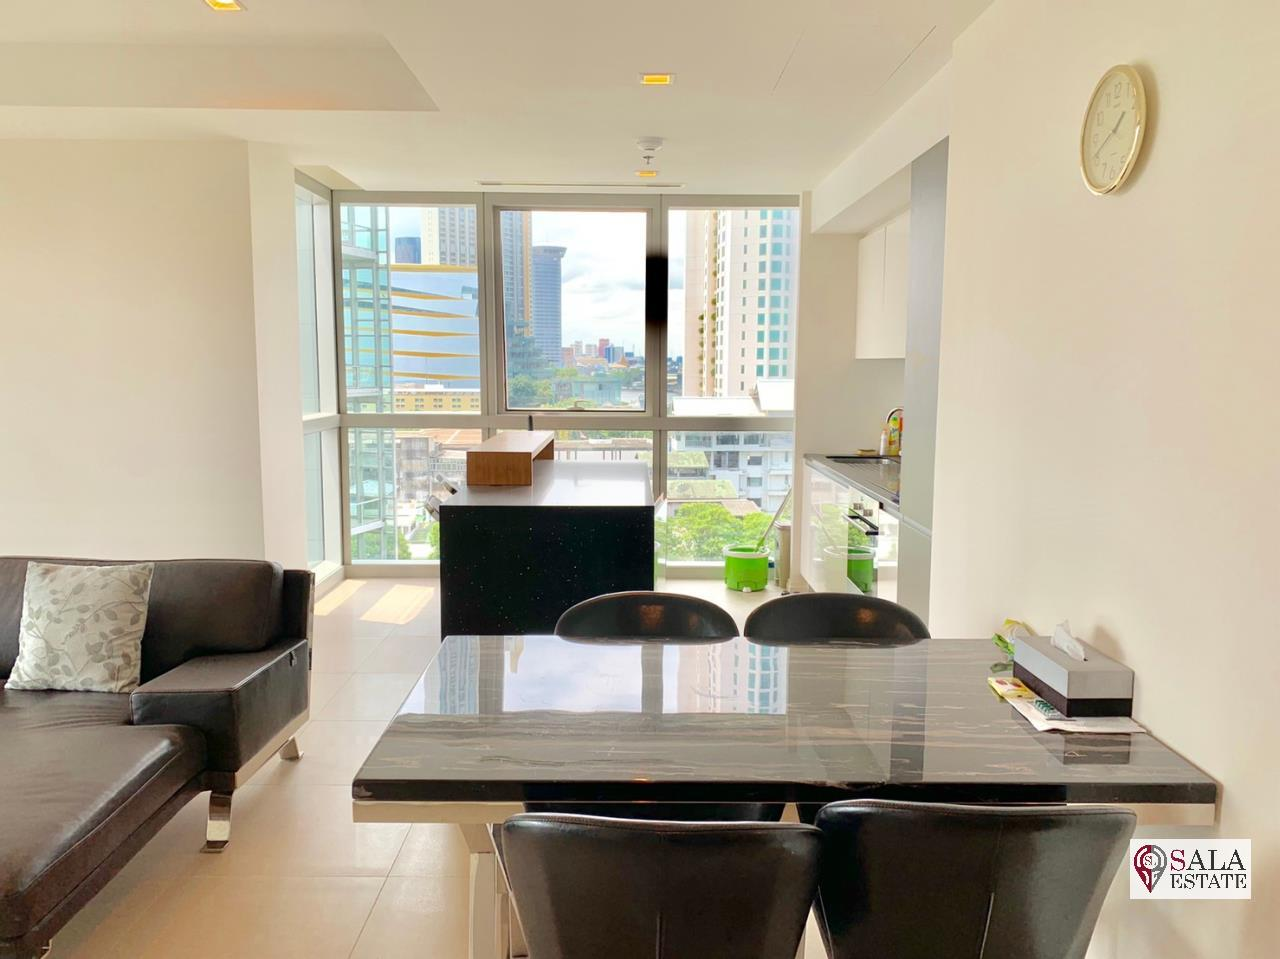 SALA ESTATE Agency's FOR SALE  THE RIVER – RIVERSIDE,ICONSIAM,豪华公寓,河景房, 2卧2卫, 家具齐全 4